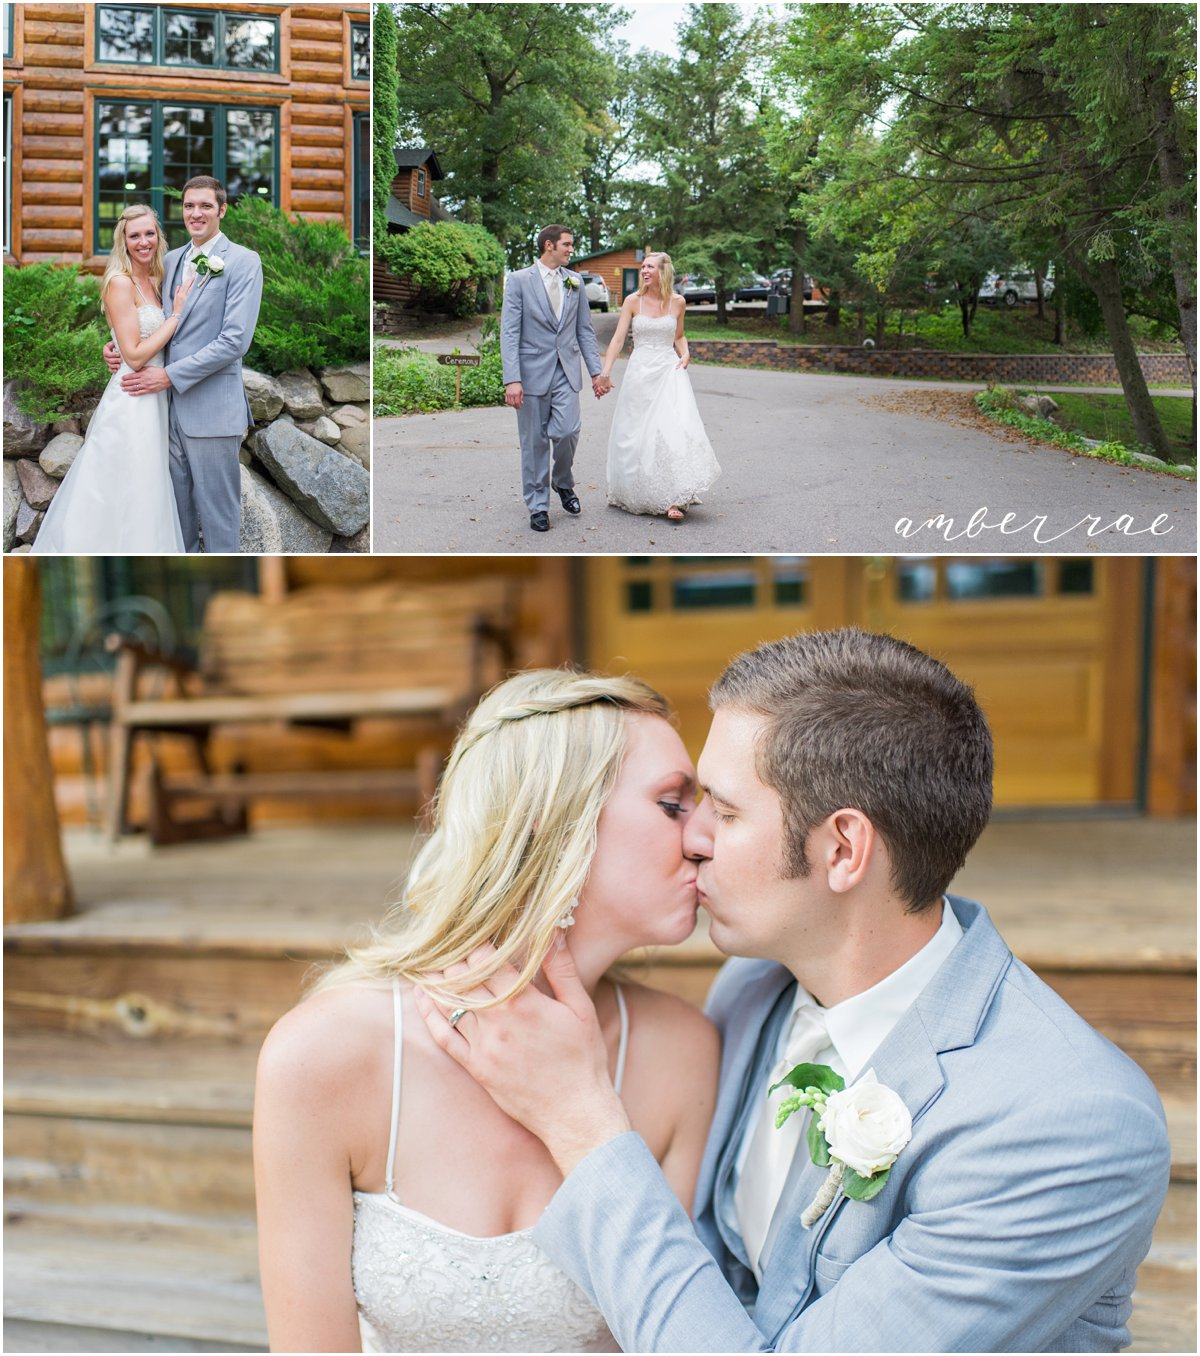 AmberRaePhoto_Wedding_Bug_Bee_Hive_Resort_MN_0050.jpg